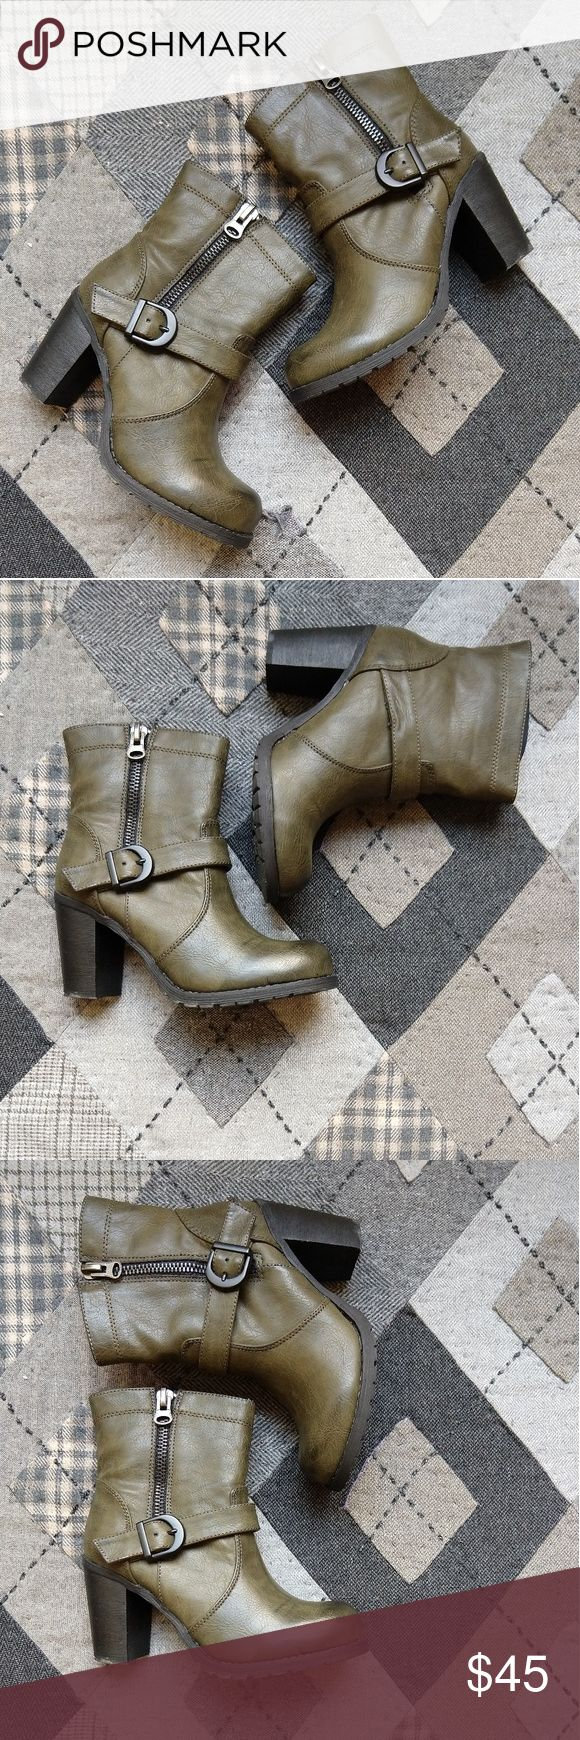 Modern Rebel Lug Sole Zip Buckle Vegan Short Boot Ugh so gorgeous. Olive green. Functional buckles, zippers pull smooth. Grippy soles. Very gently worn, wish I was a 7! modern rebel Shoes Heeled Boots